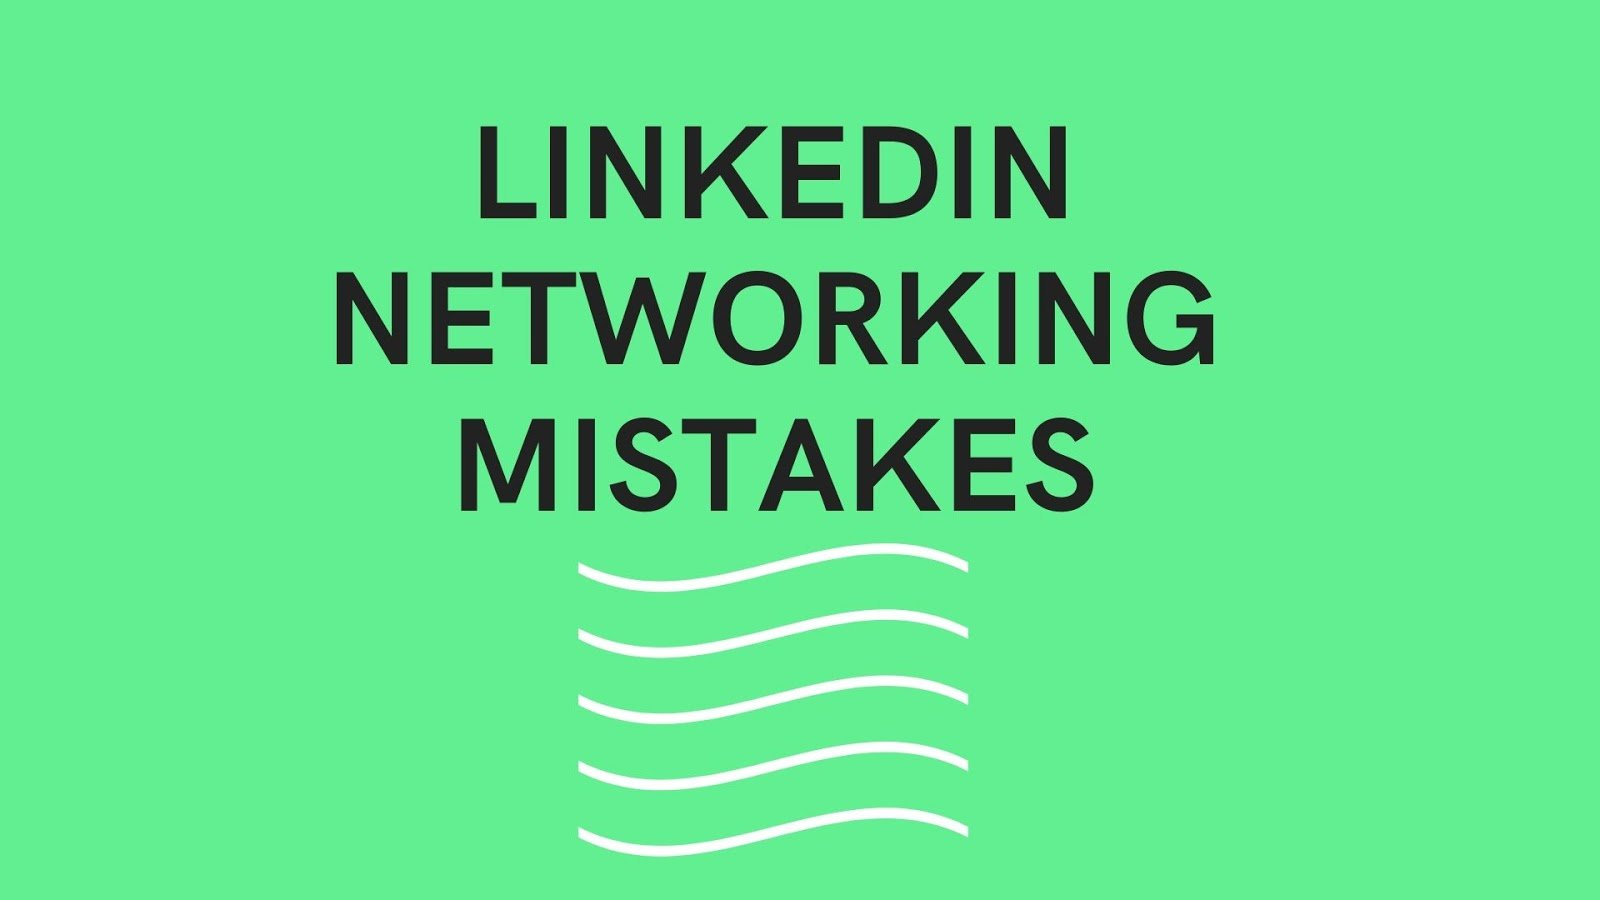 Part I: LinkedIn Networking Mistakes